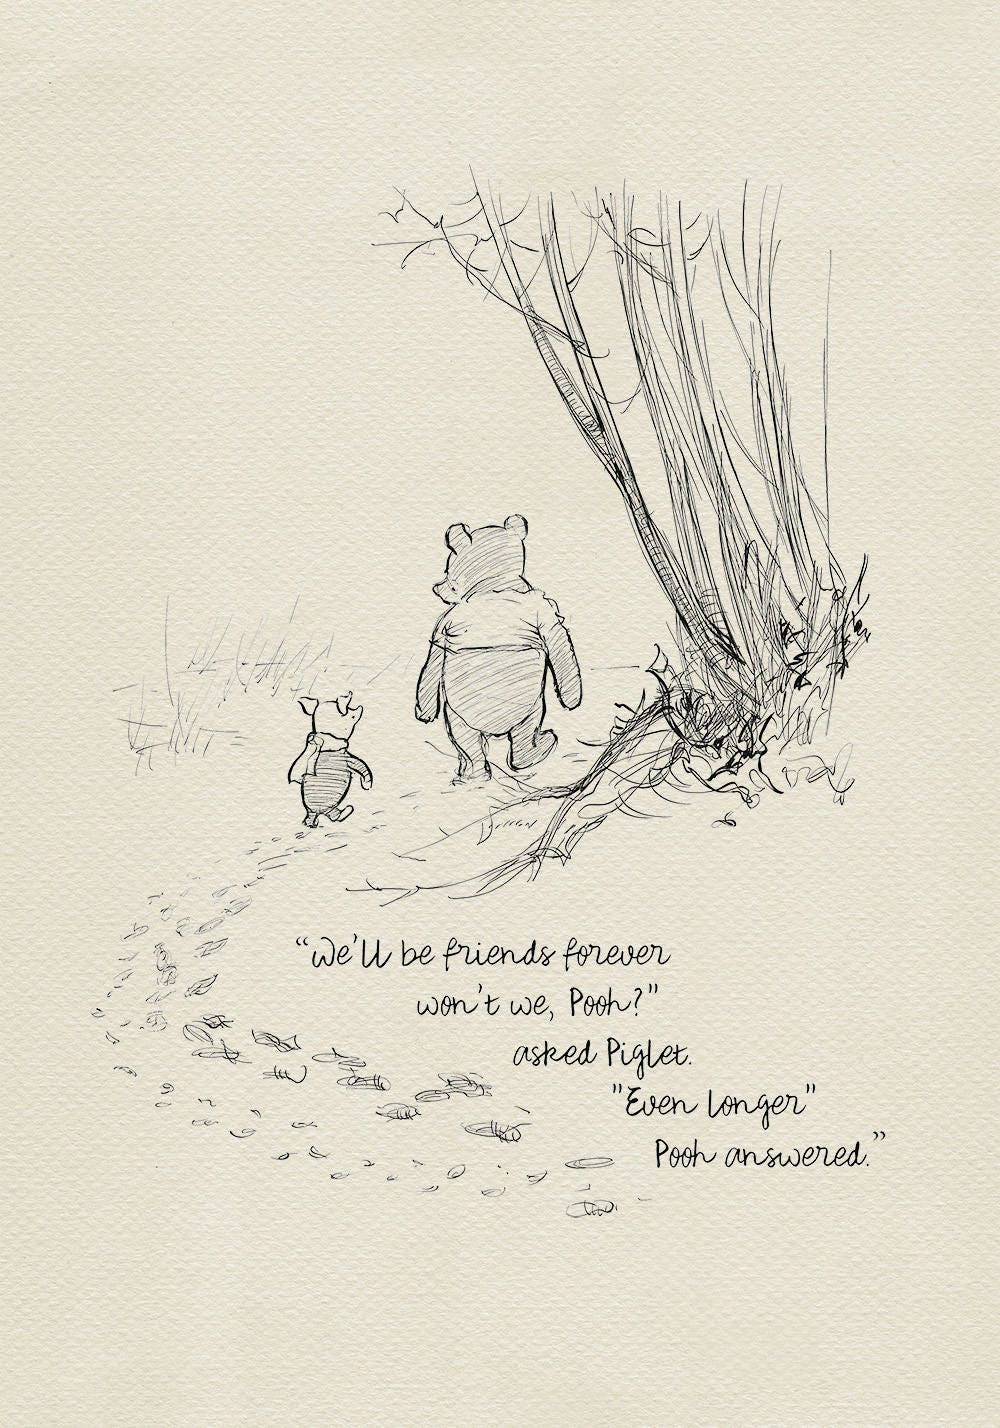 Pooh Love Quotes Winnie The Pooh Quotes We'll Be Friends Forever